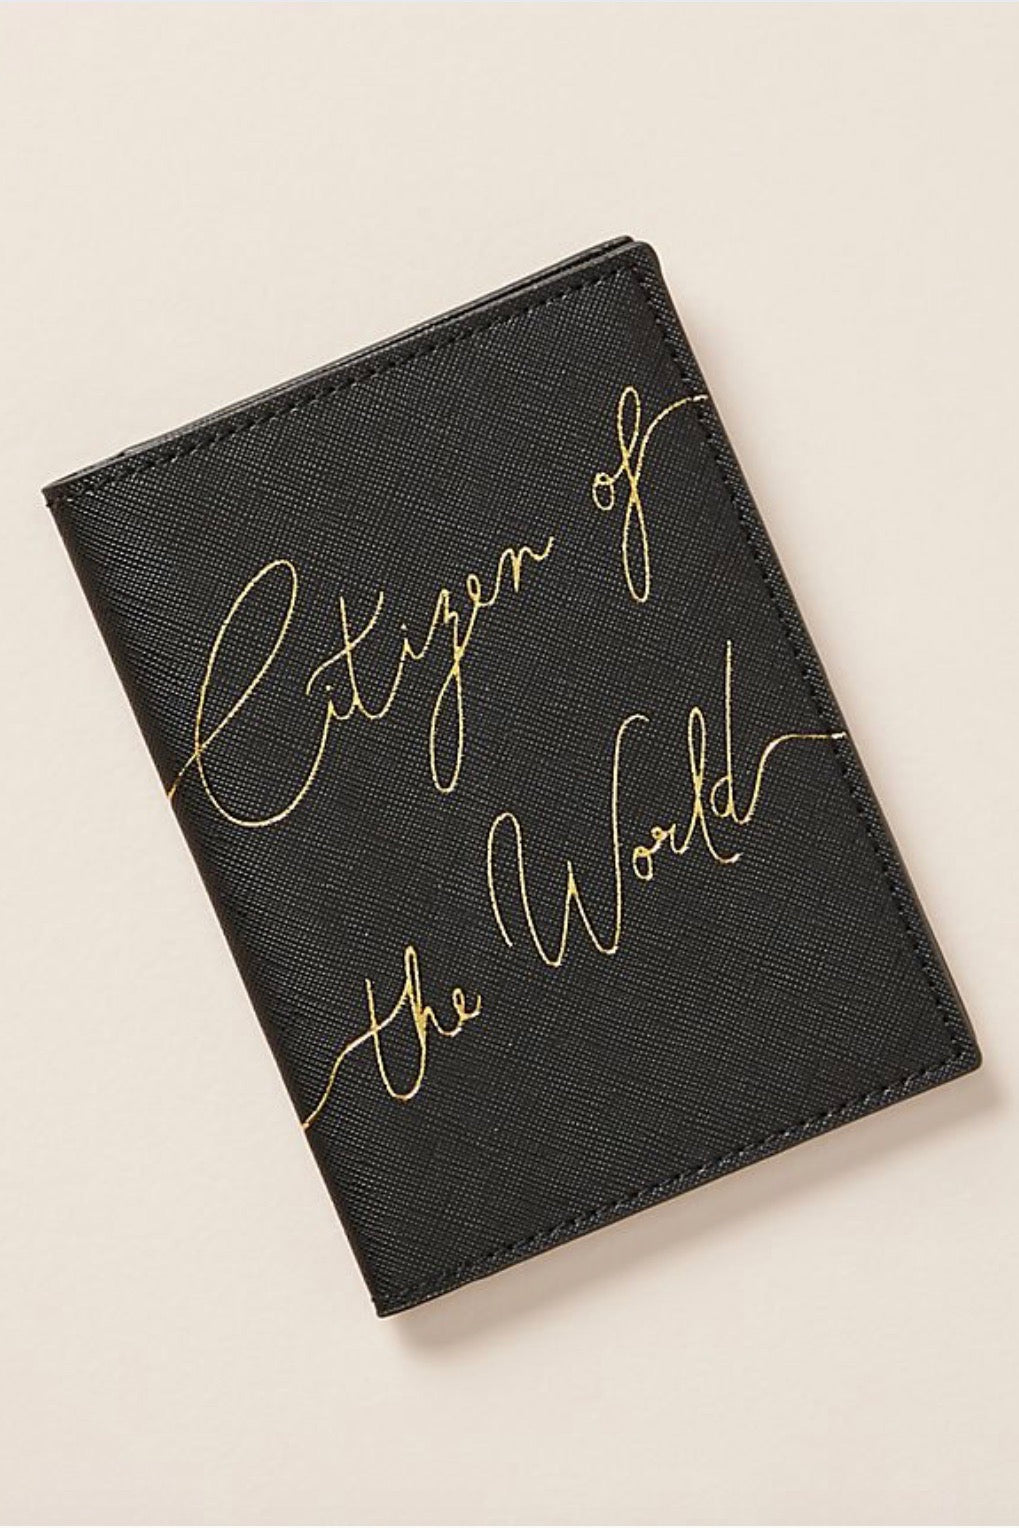 Luna Passport Holder- Citizens Of The World